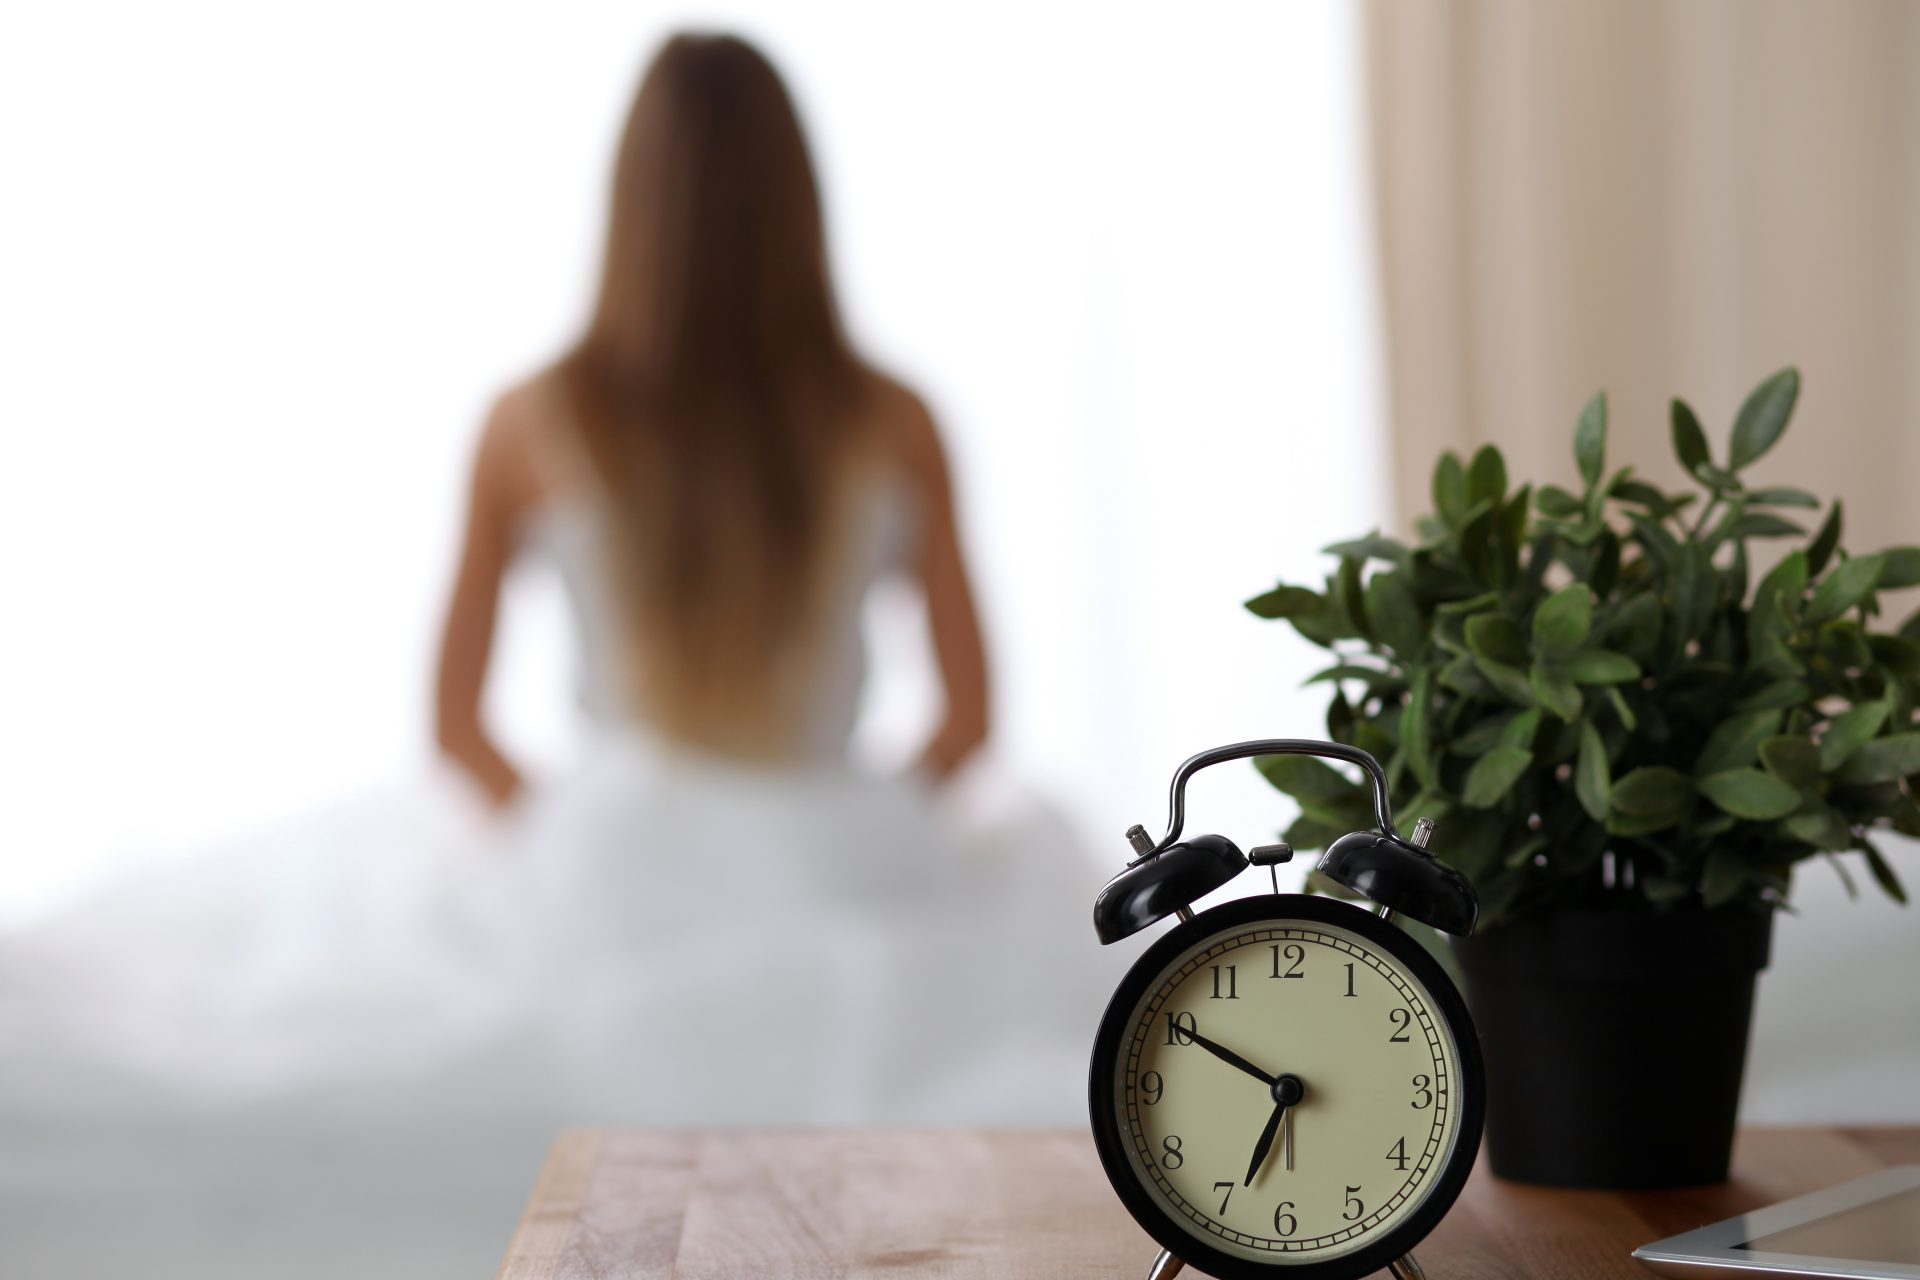 Successful-people-Morning-Routine-Ideas-Tips-To-Empower-Your-Day-Change-Your-Life-Meditation-Alarm